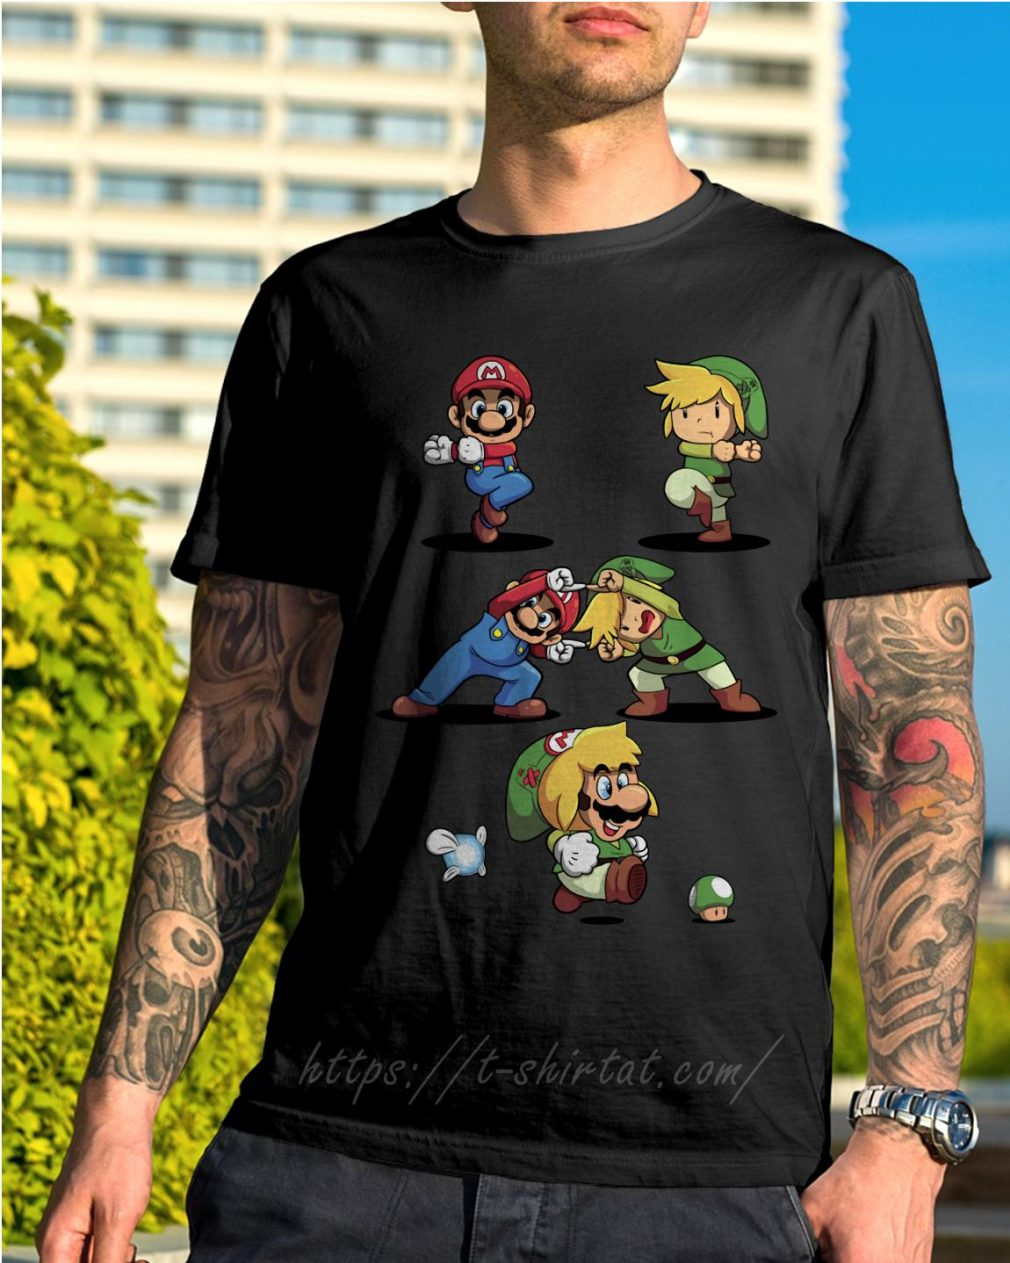 Mario and Toon Link fusion dance shirt